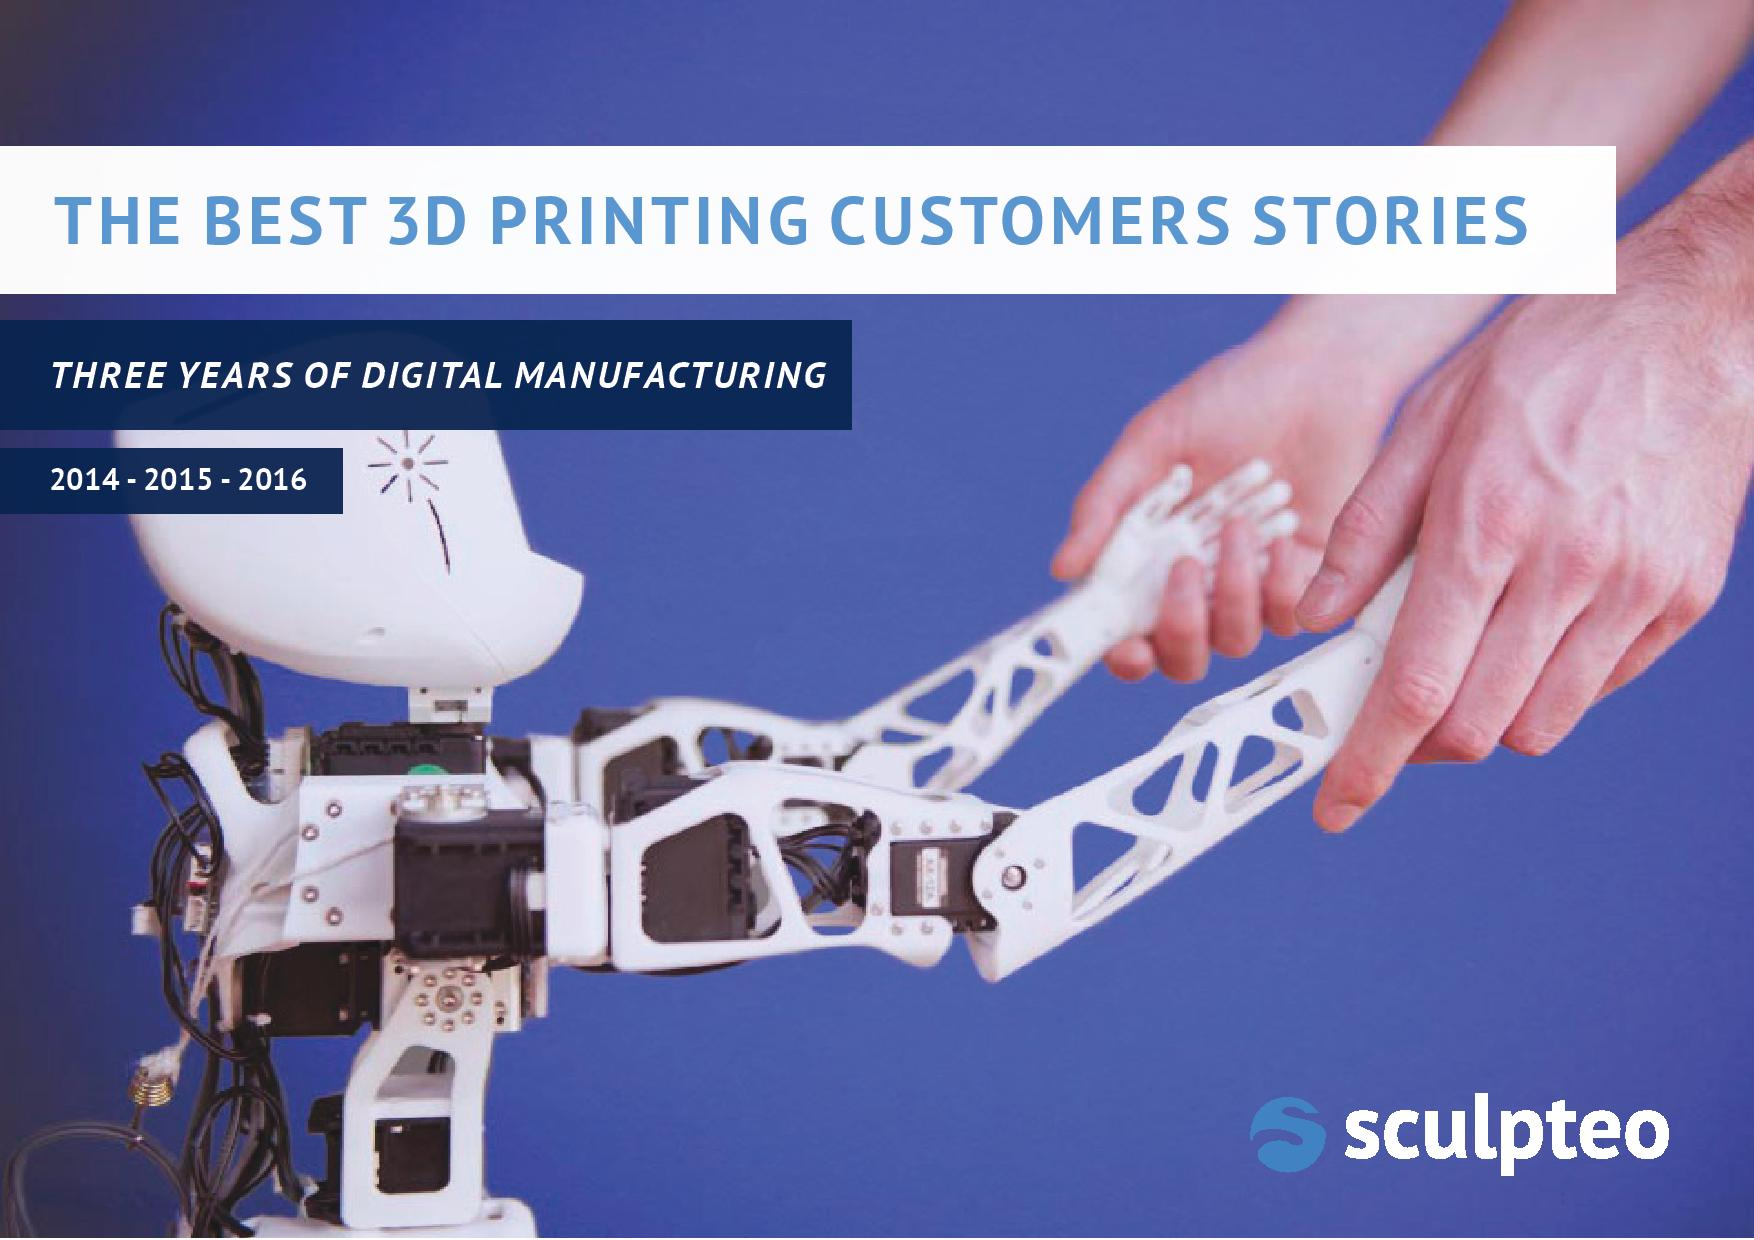 Discover our best 21 3D Printing customer stories and get inspiration! Learn how to make the most of 3D Printing for your application.